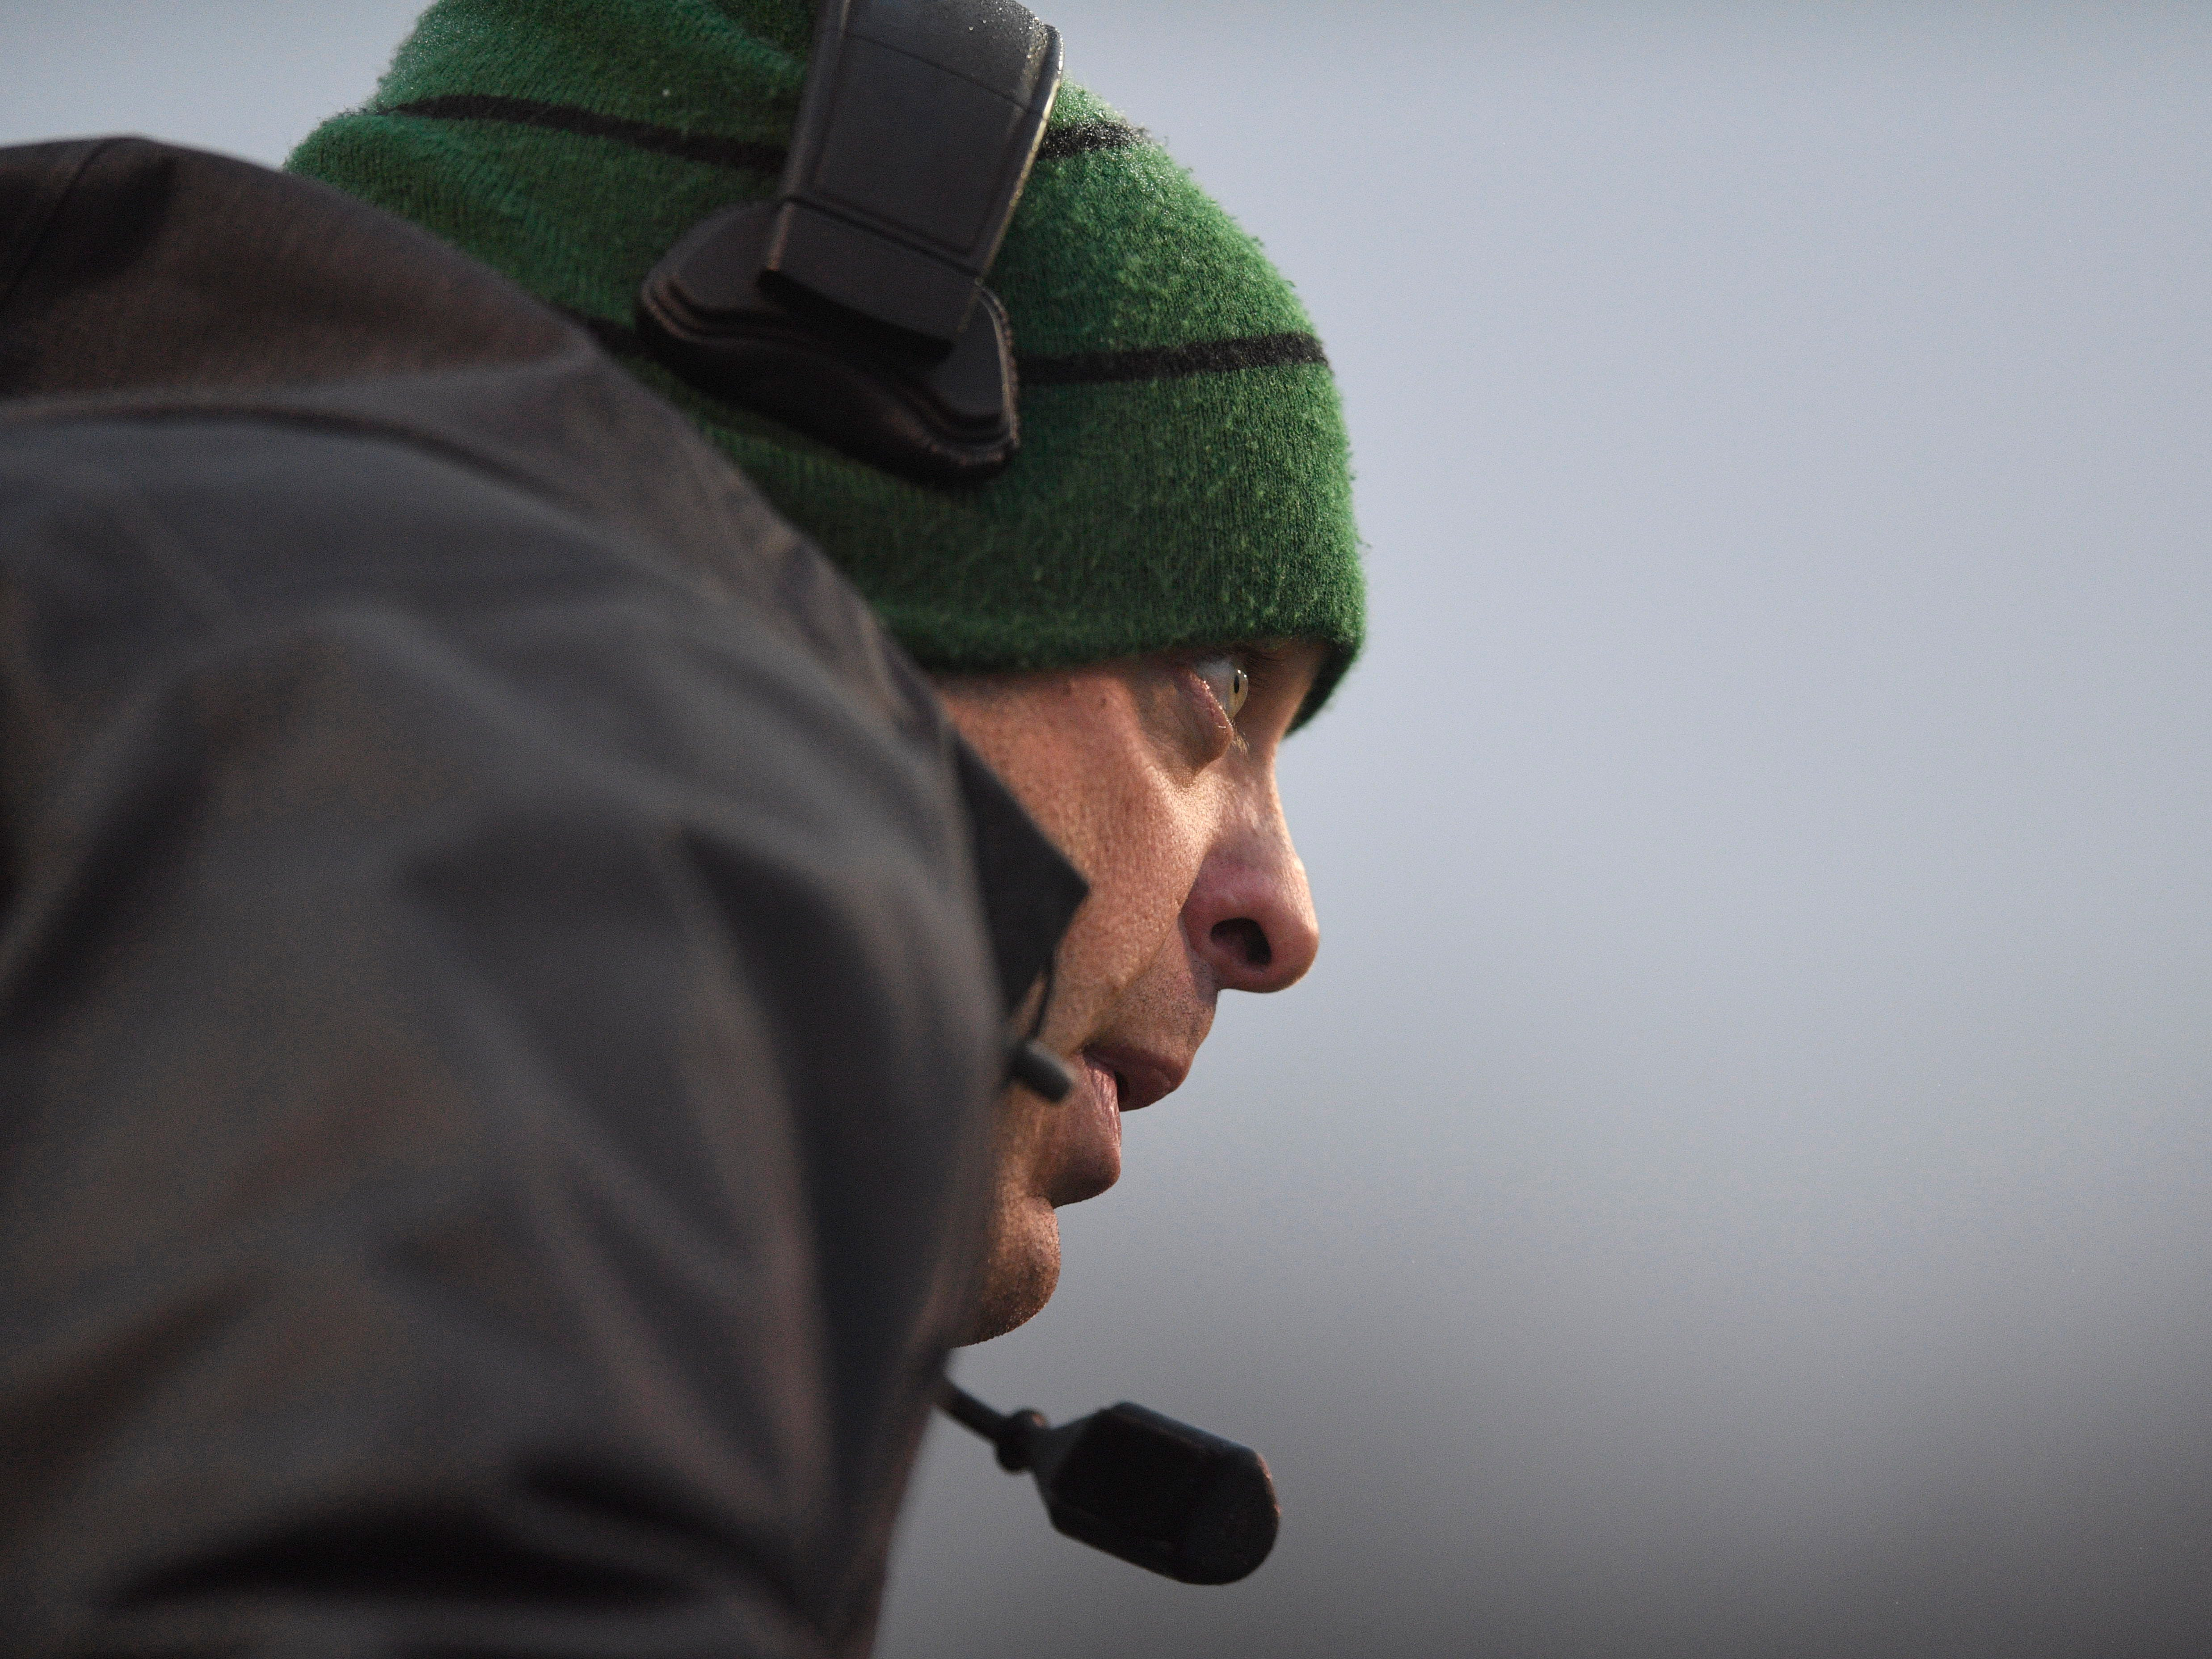 Greeneville Head Coach Caine Ballard watches his team in the first half during the Class 4A BlueCross Bowl state championship at Tennessee Tech's Tucker Stadium in Cookeville, Tenn., on Thursday, Nov. 29, 2018.